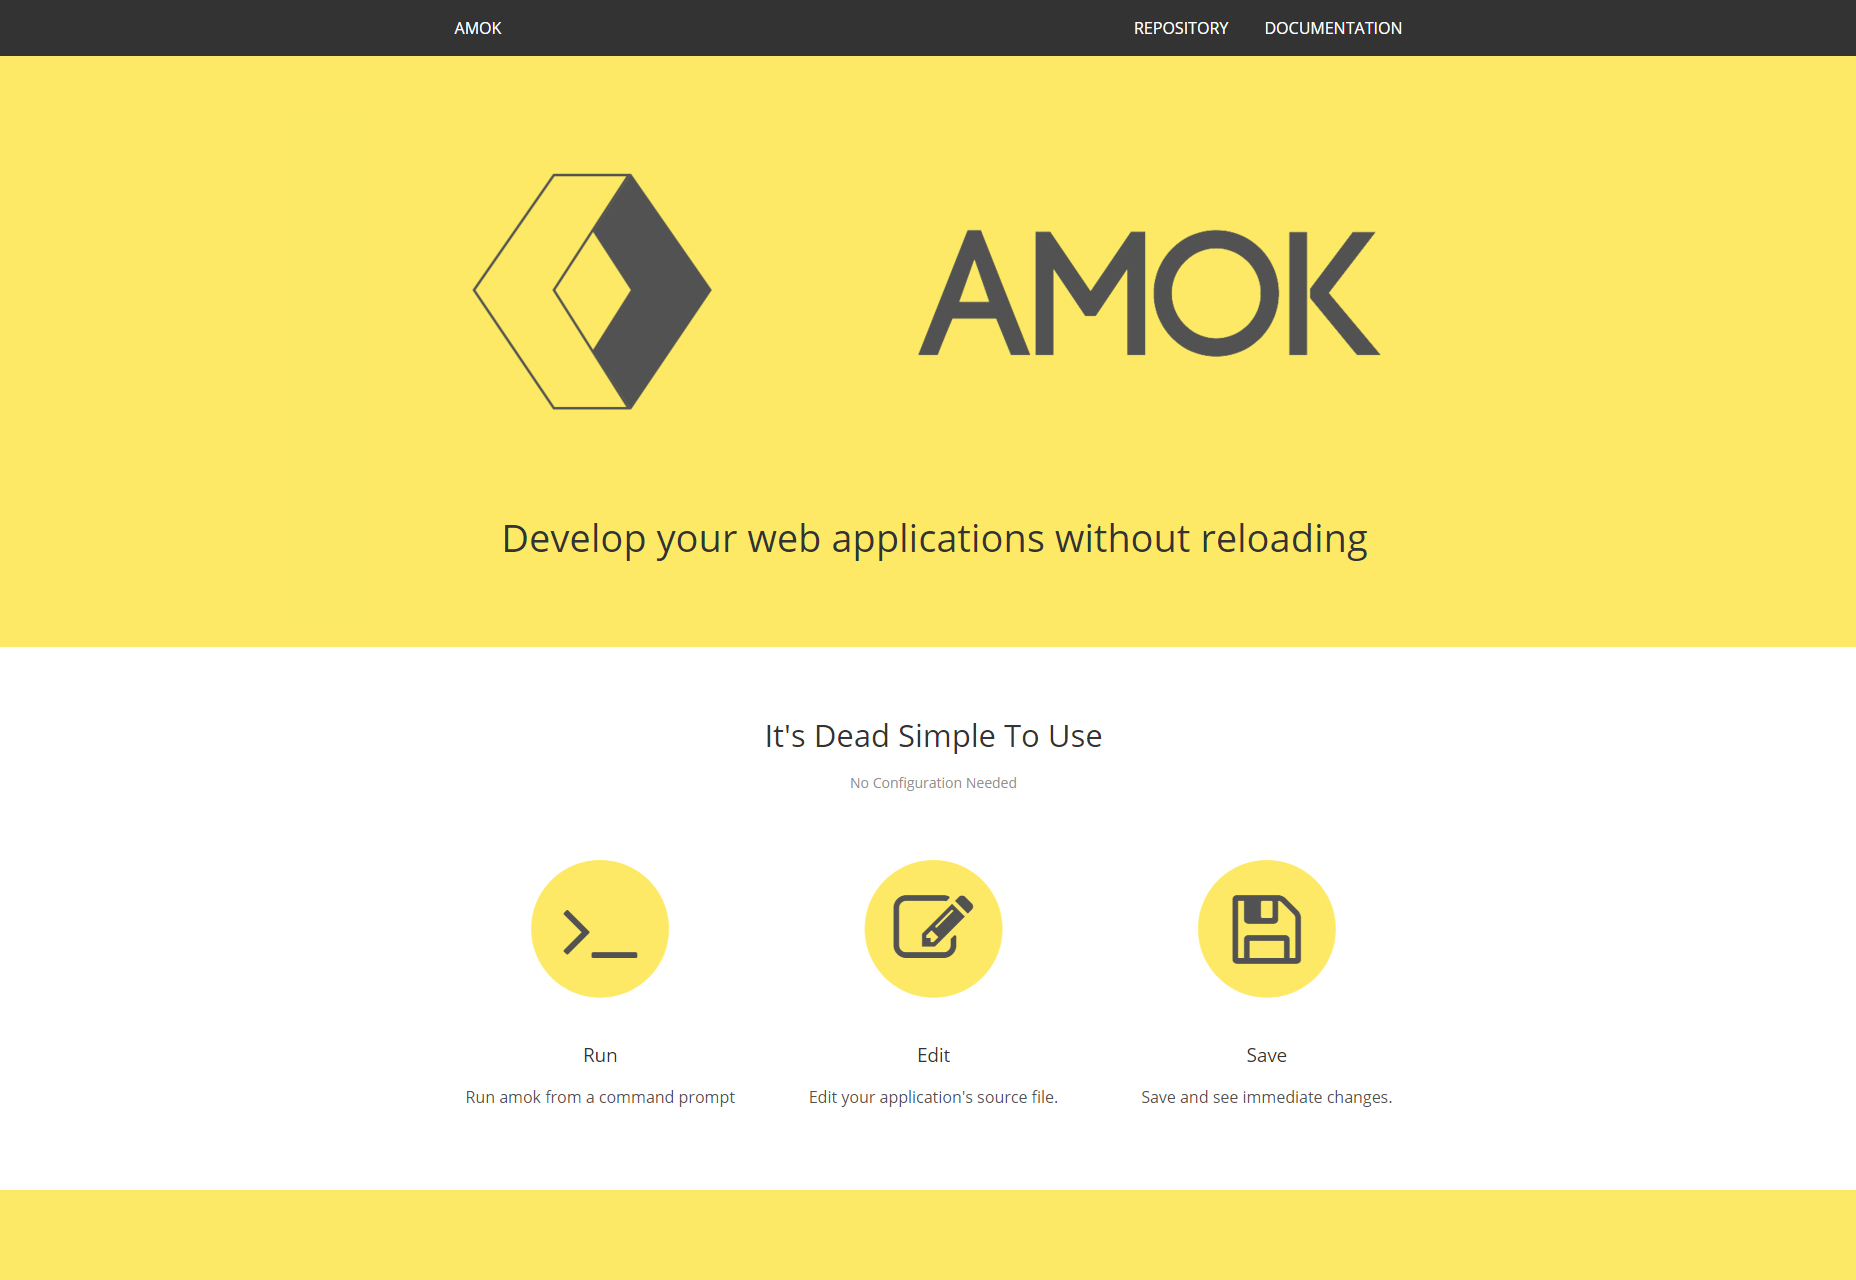 Amok: Develop Your Web Application Without Reloading